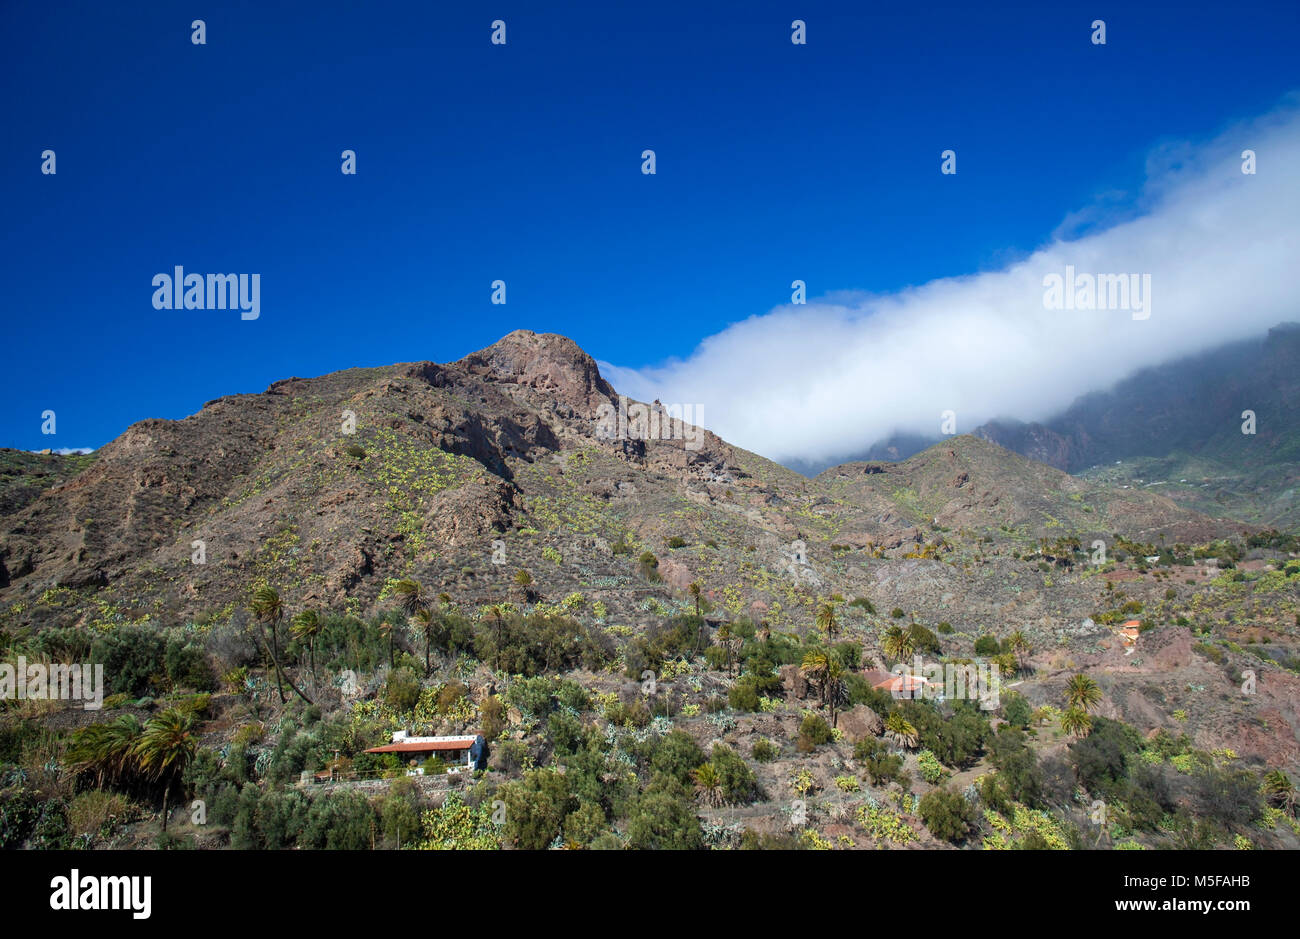 Gran Canaria, February 2018, one of the largest aboriginal cave villages on Canary Islands, Montana de los Huesos Stock Photo